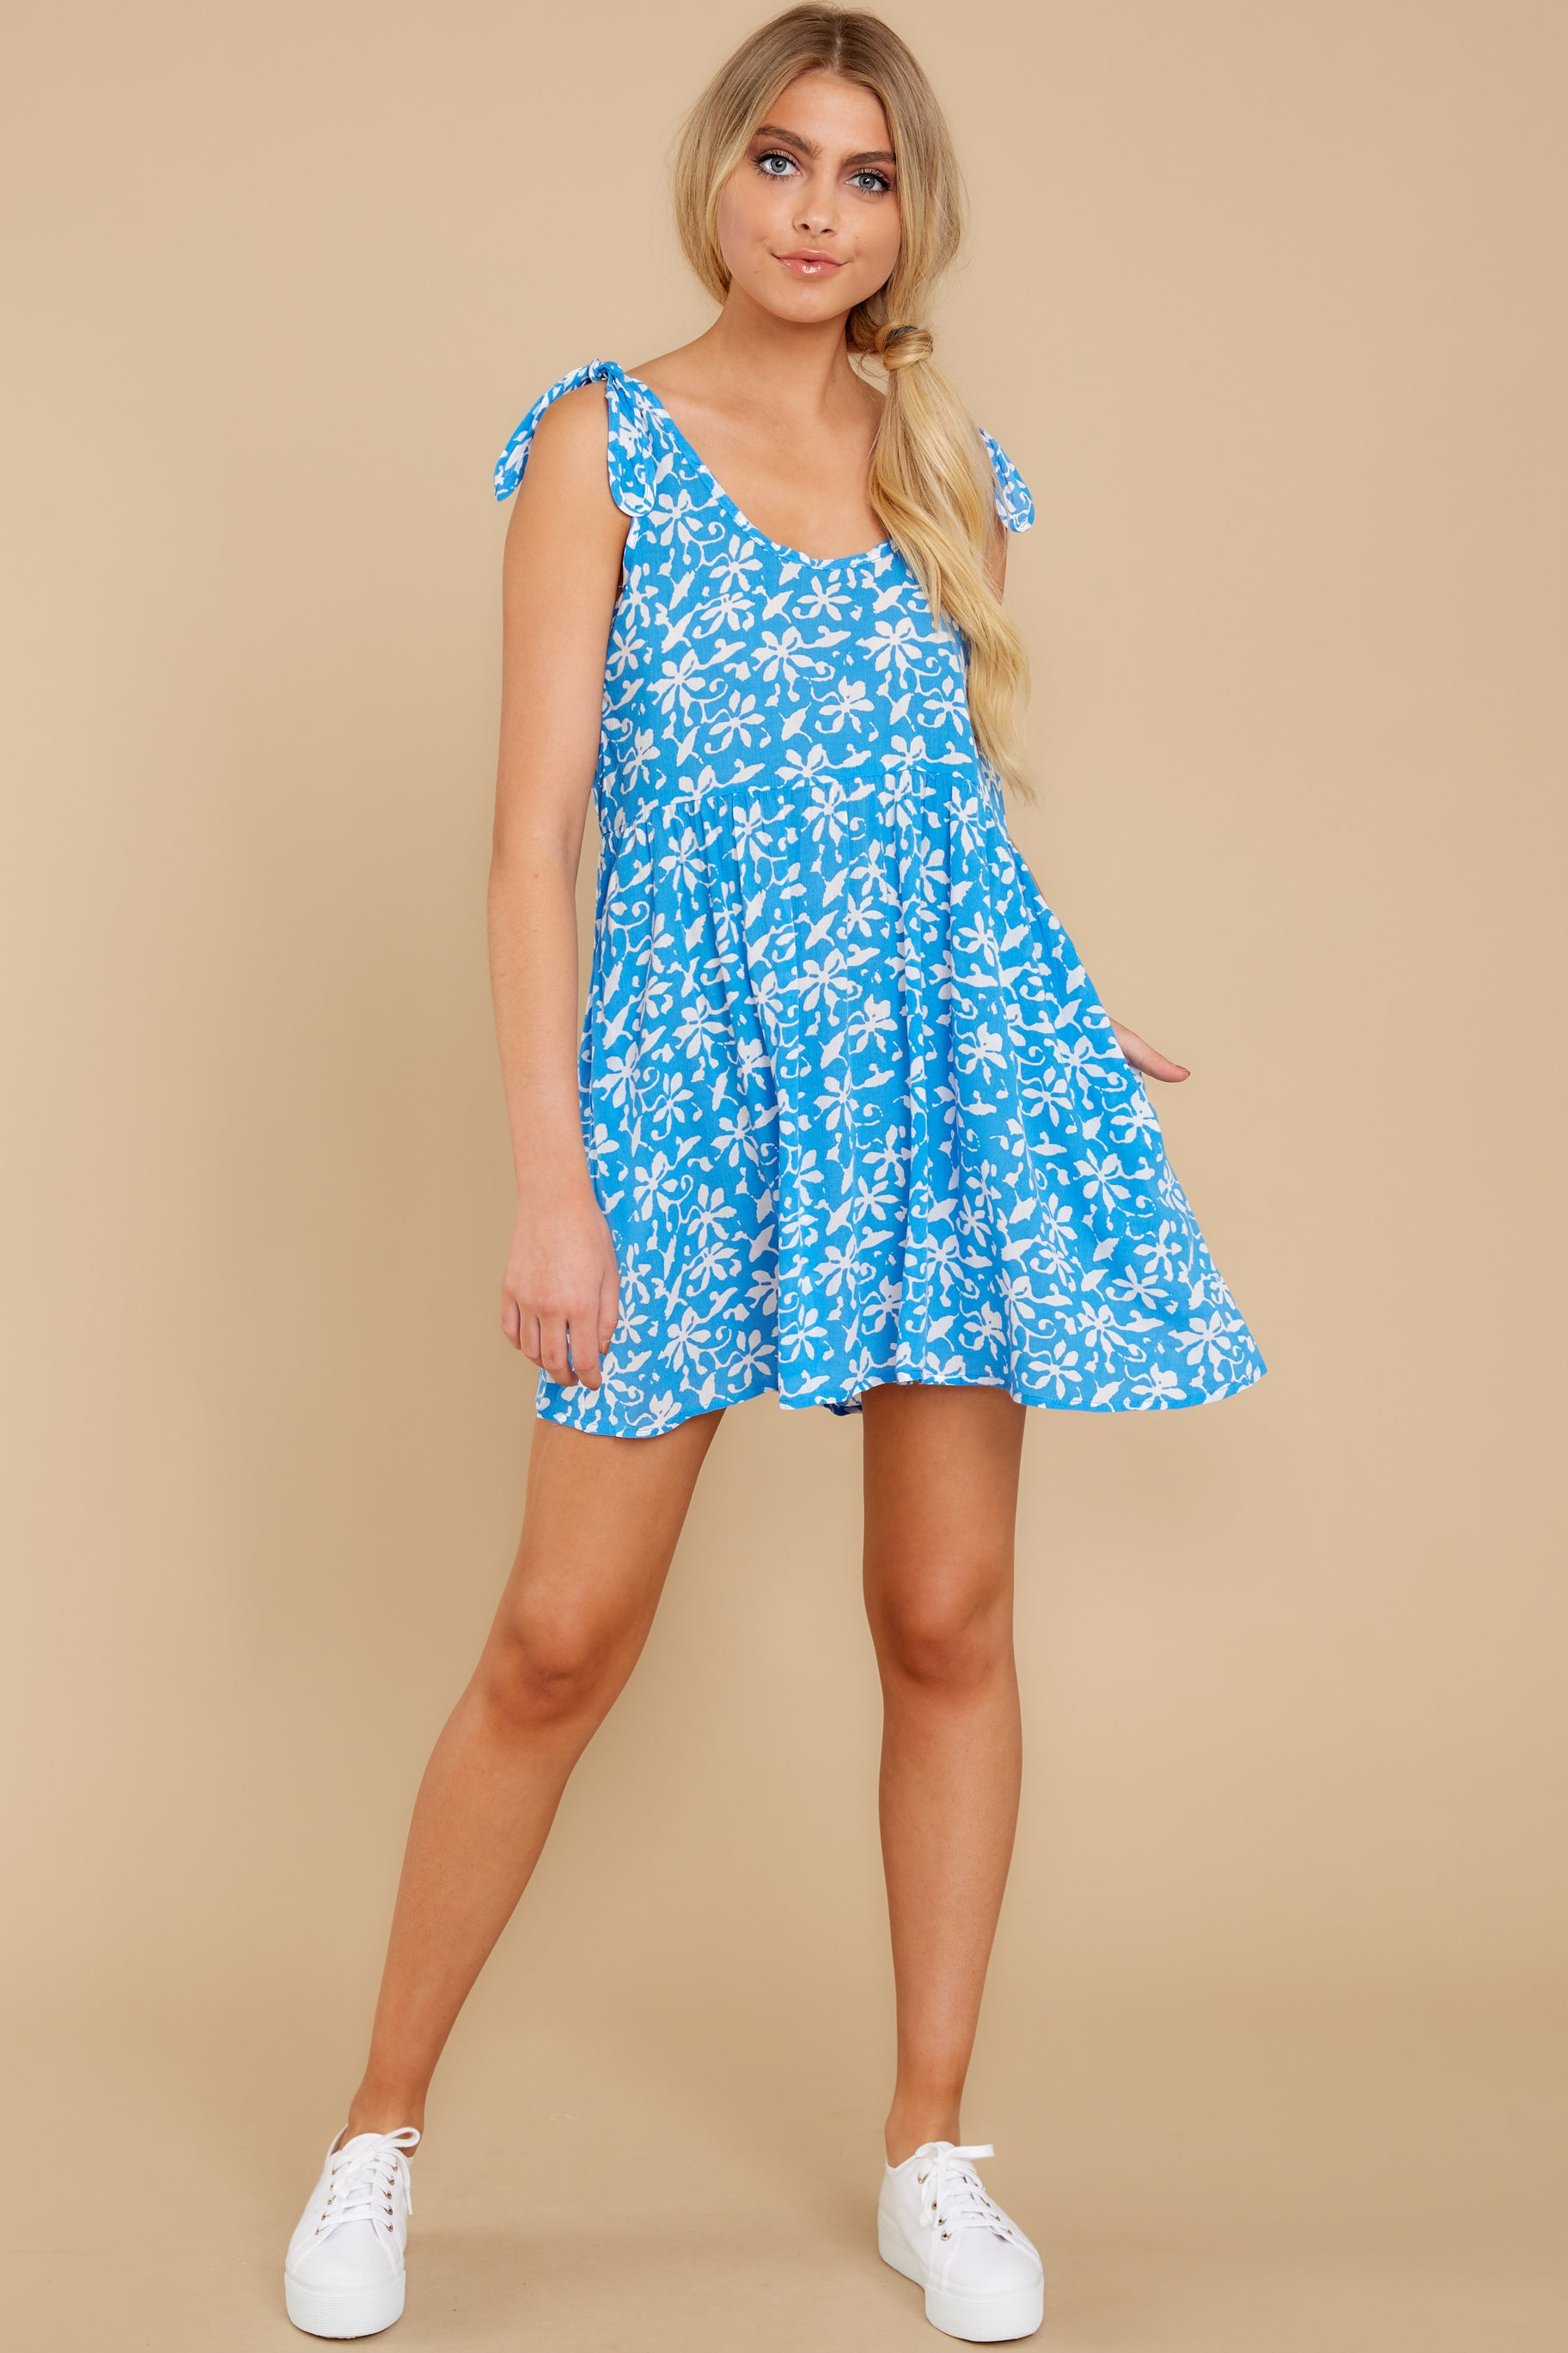 4 Girl On Fire Blue Floral Print Dress at reddress.com